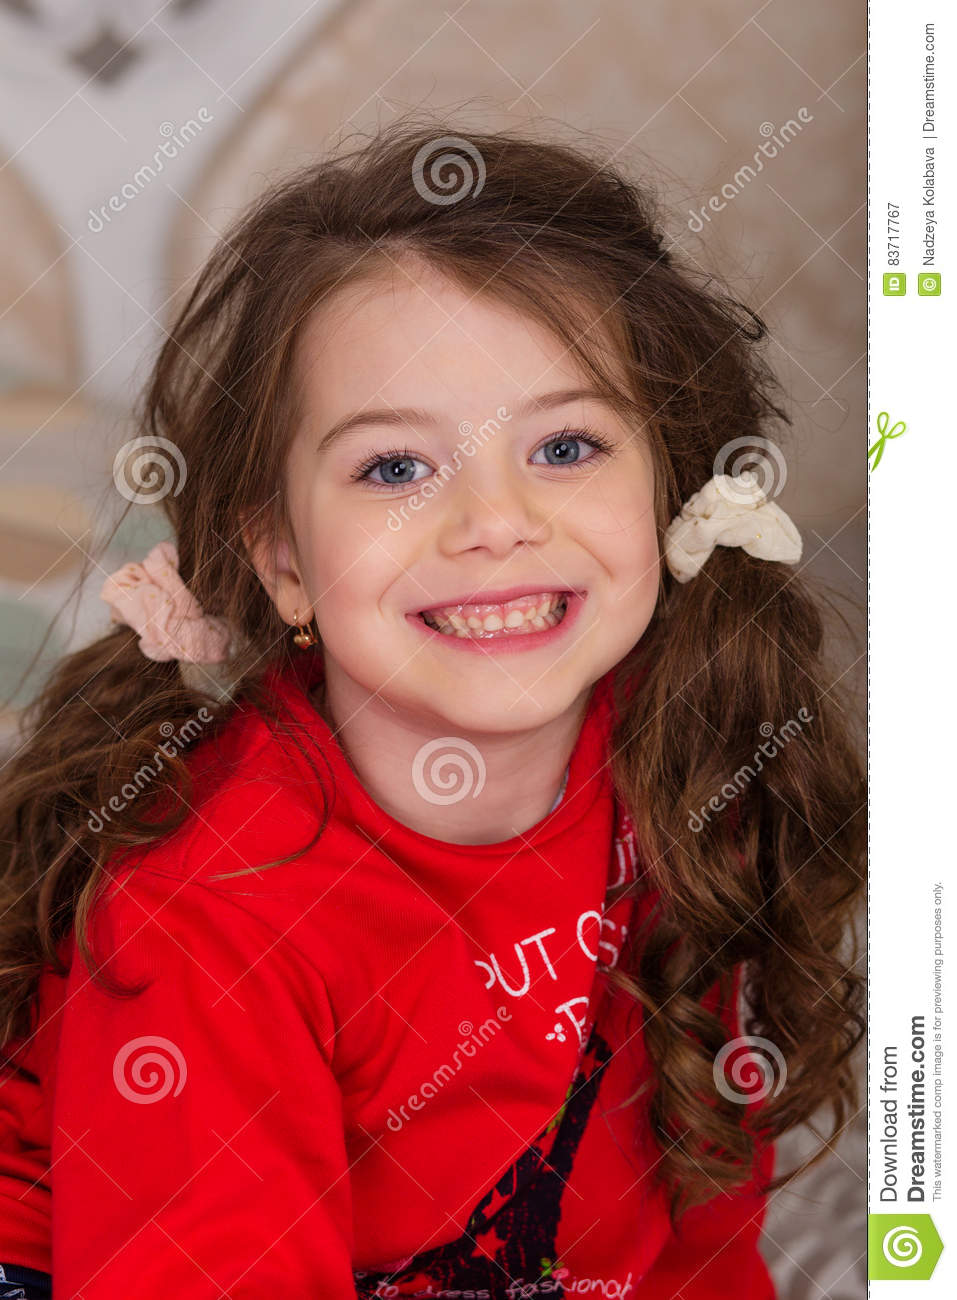 Sweet Girl In Pajamas Getting Ready For Bed Stock Photo